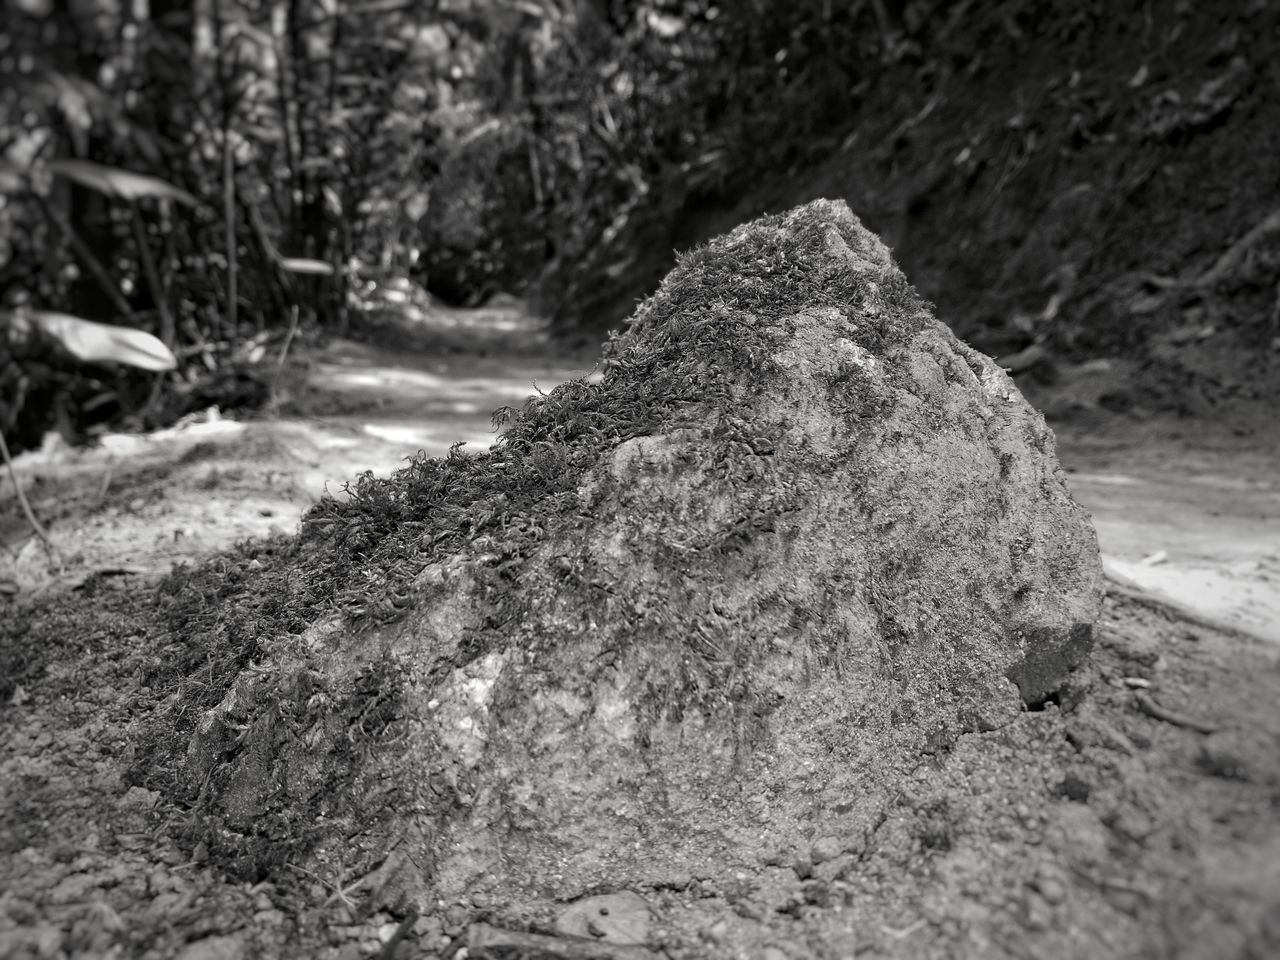 rock - object, nature, outdoors, day, no people, close-up